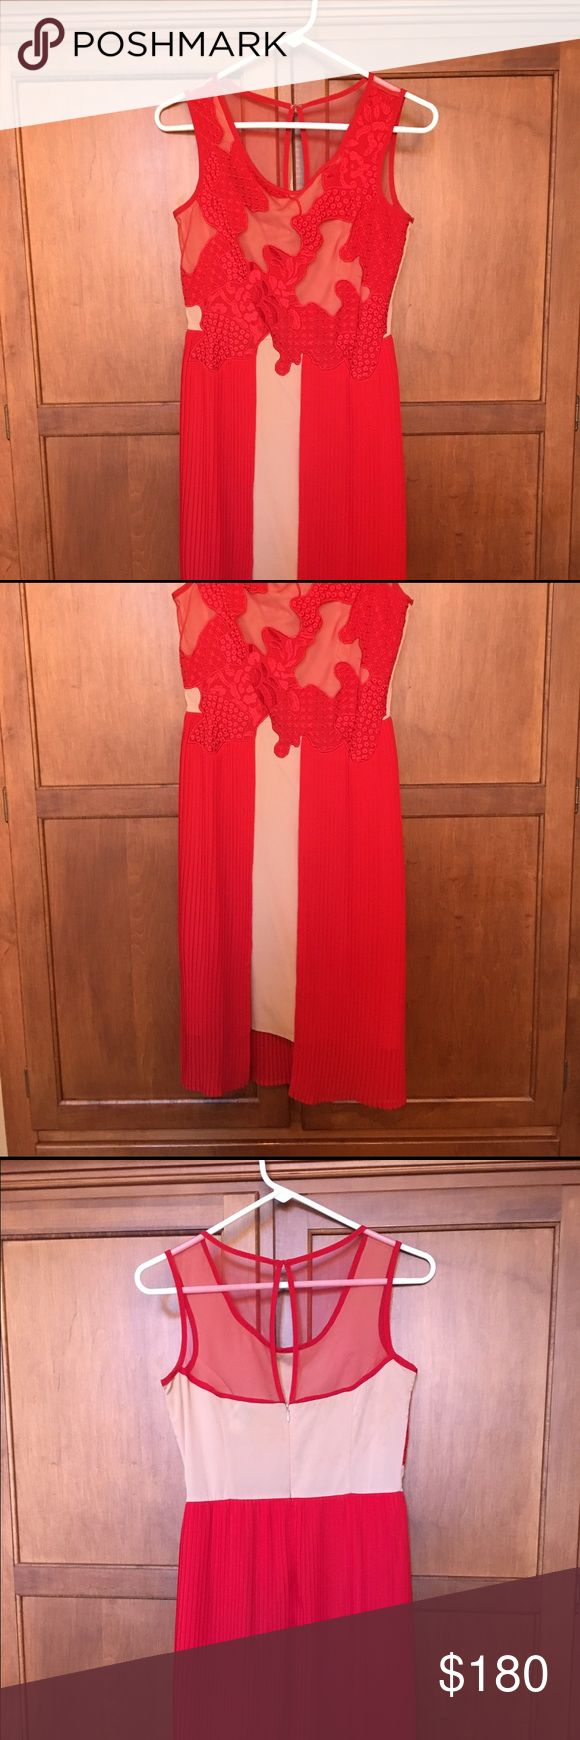 Reiss dress size 6 This vibrant red dress was worn only once to a rehearsal dinner. It's in perfect condition. Reiss sizes run small. Reiss Dresses Midi